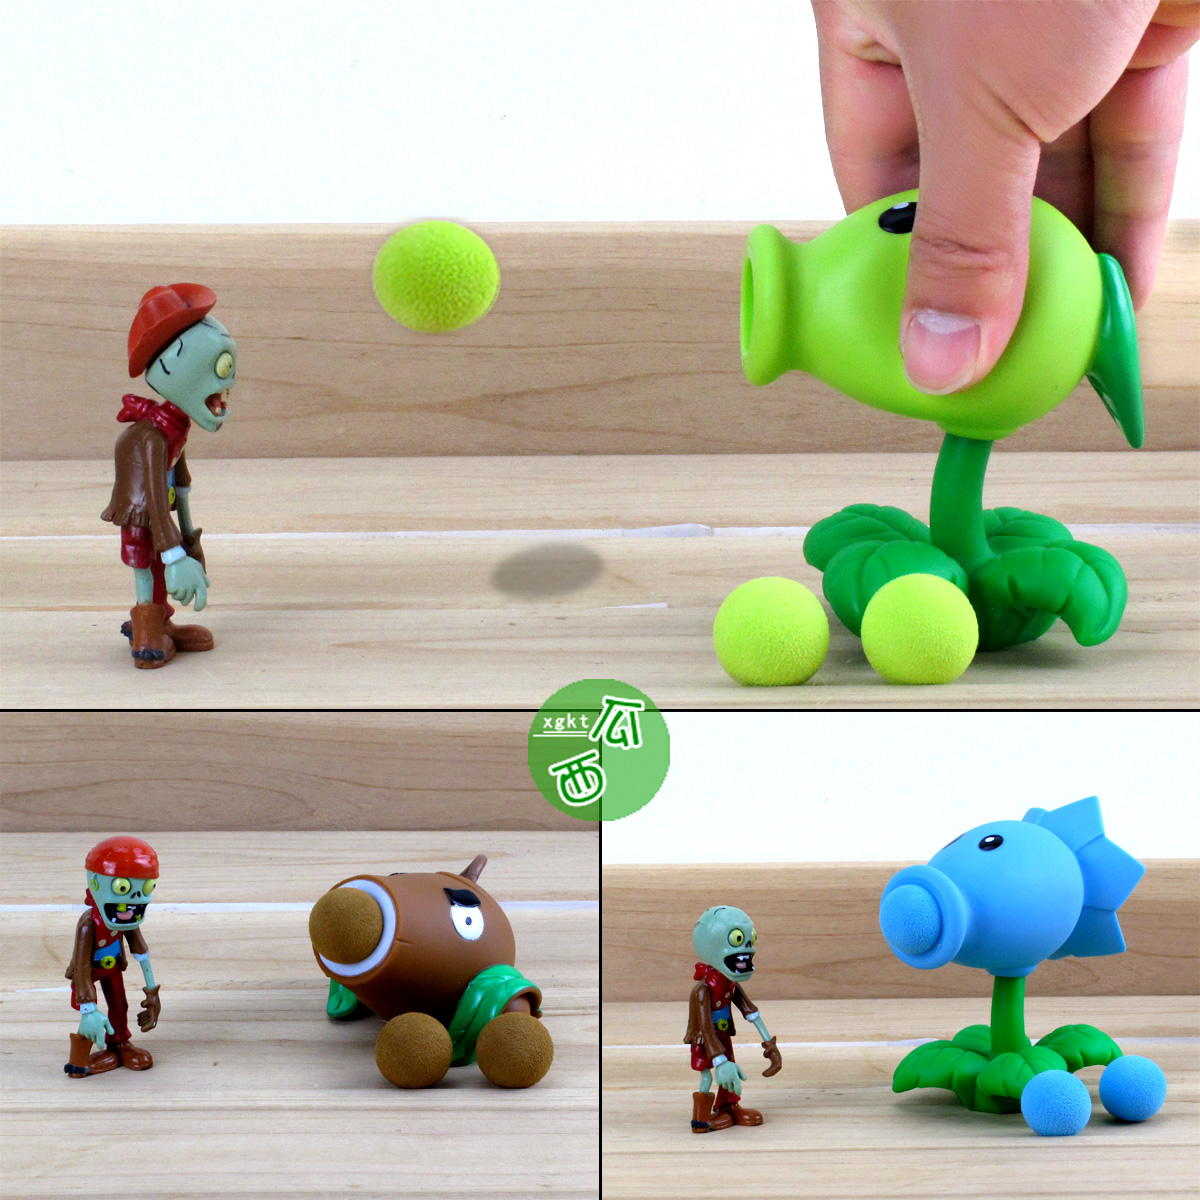 New Popular Game PVZ Plants vs Zombies Peashooter PVC Action Figure Model Toys 5 Style 10CM Plants Vs Zombies Toys For Baby Gift new 10cm kids toys pvz plants vs zombies peashooter pvc action figure model toy plants vs zombies toys for baby gift